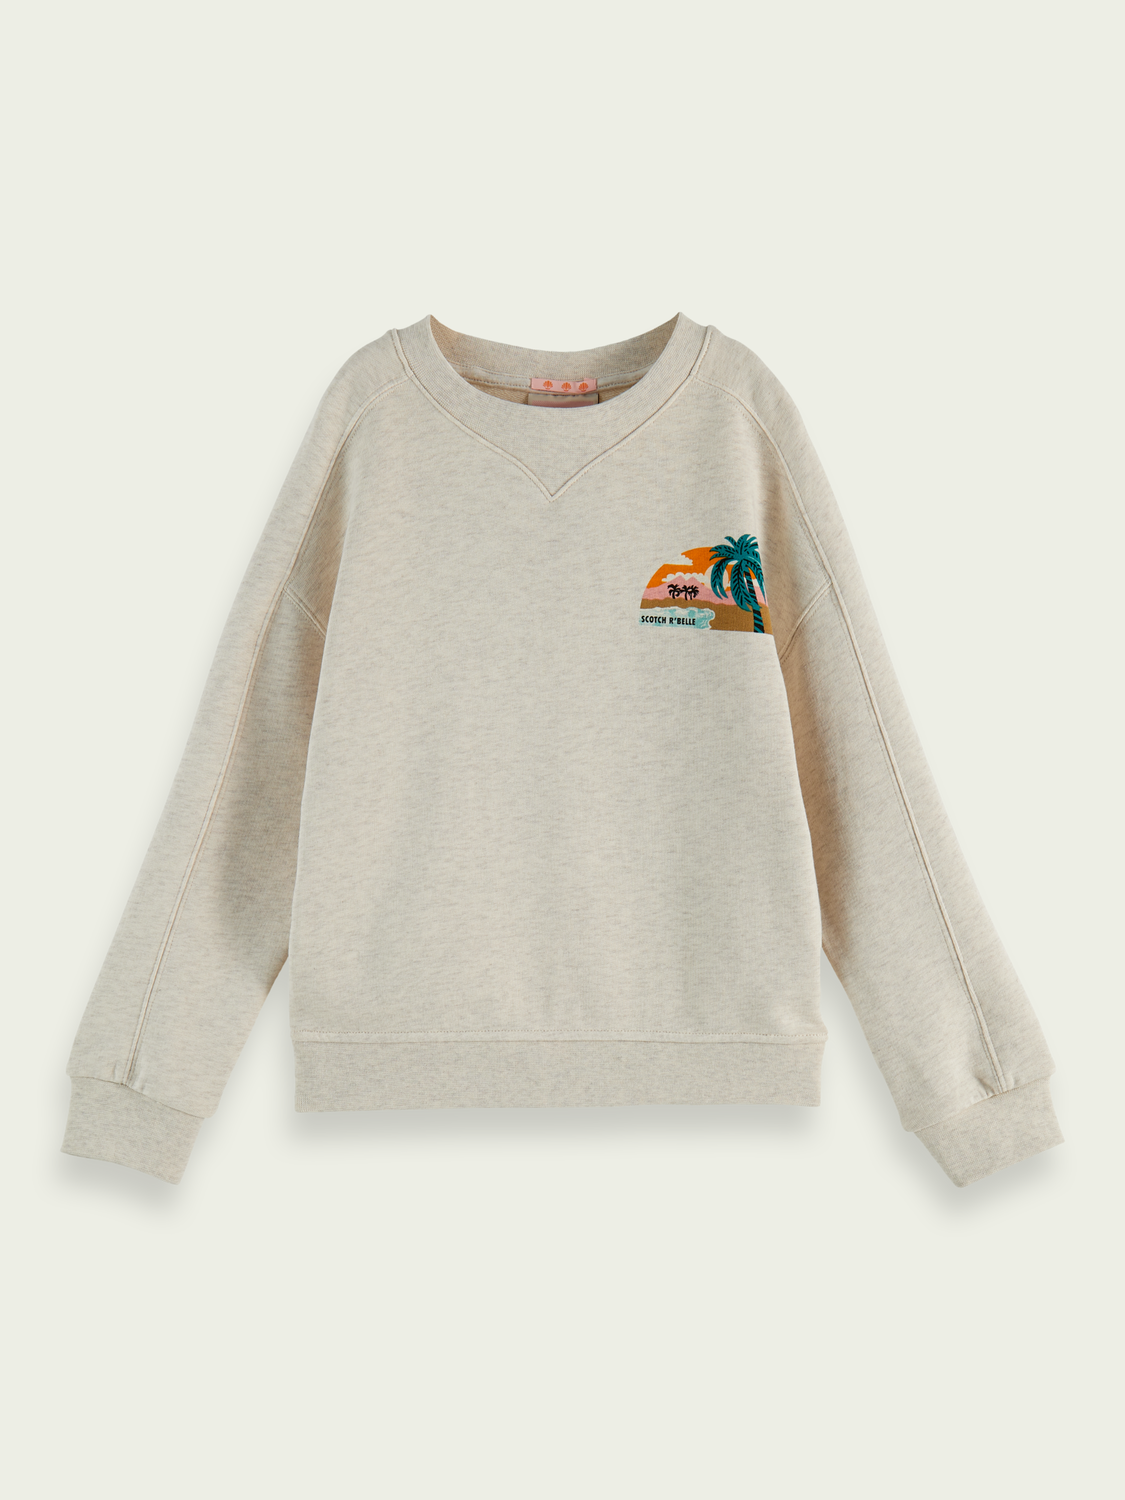 Kids Panel artwork relaxed fit crew neck